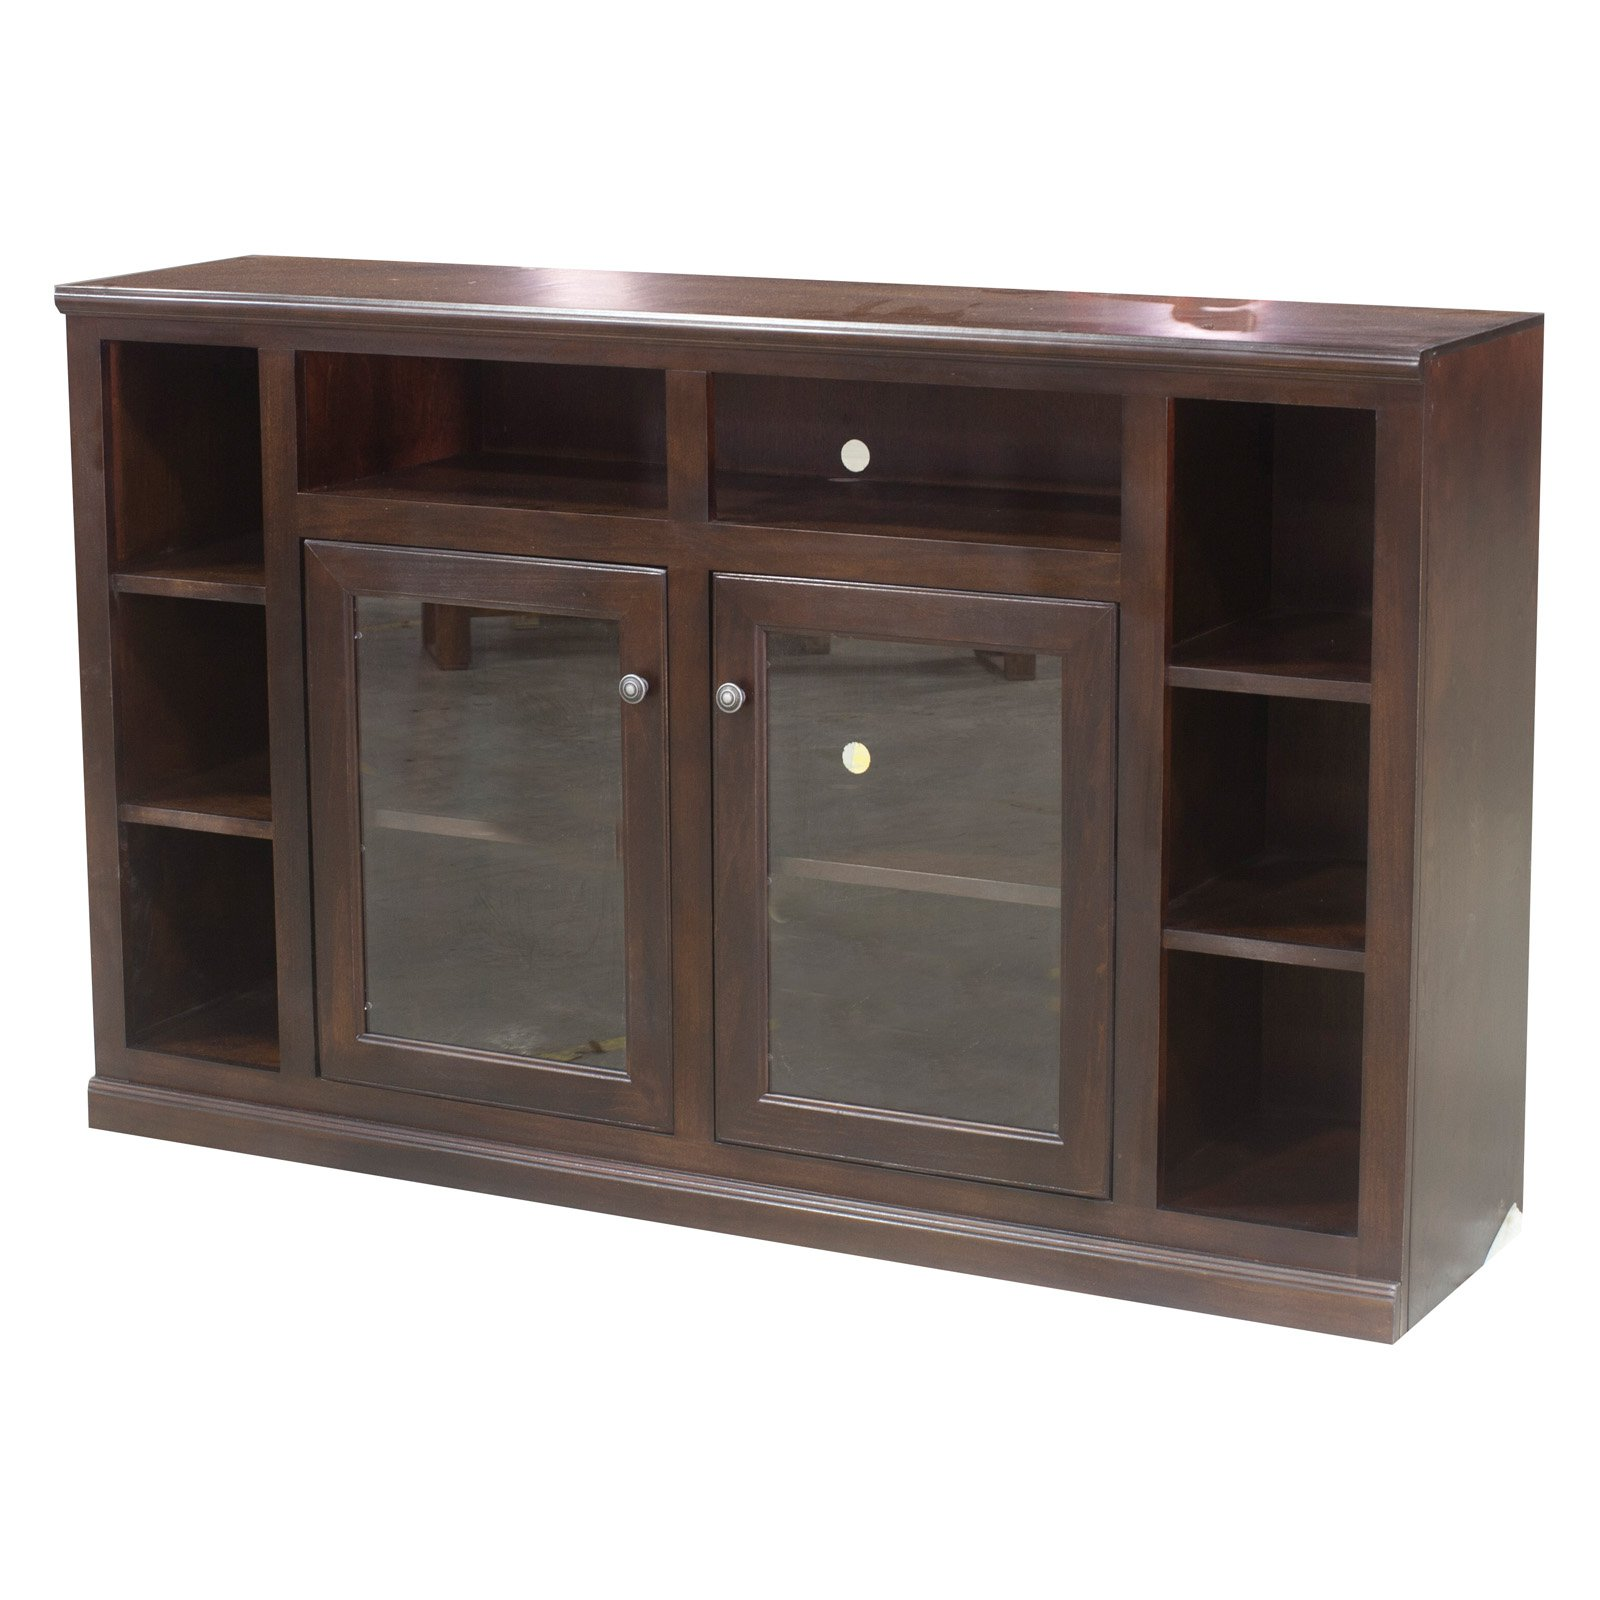 Eagle Furniture 66 in. Wide Coastal Bookcase Entertainment Console